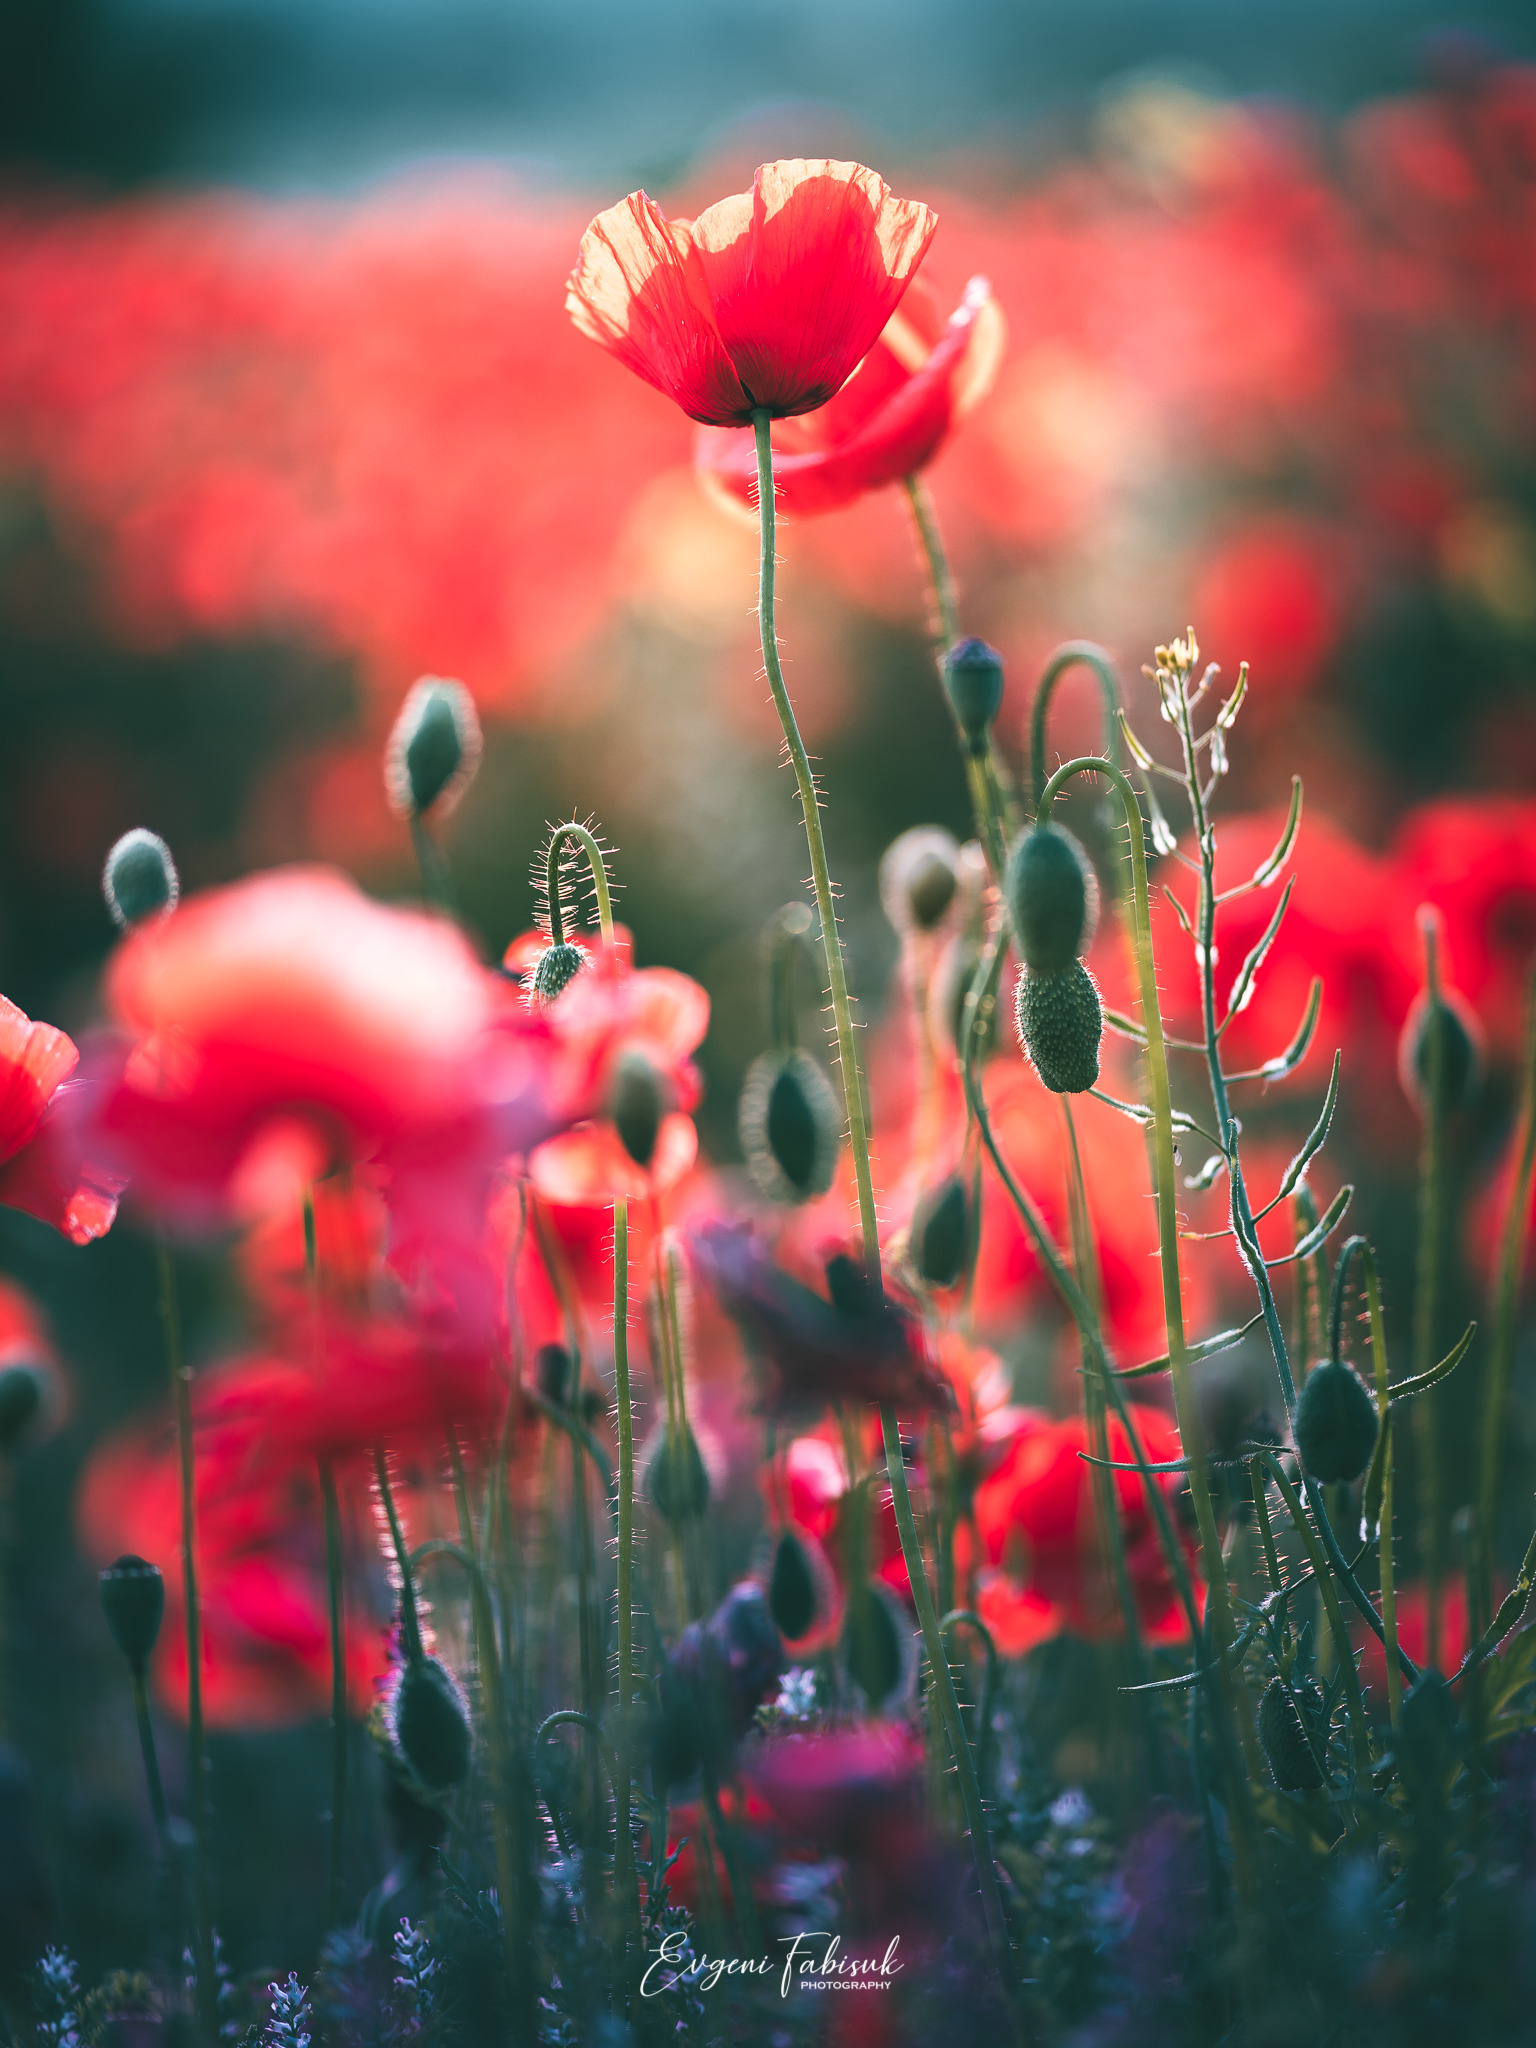 Flowers Nature Landscape Red Field Grass Plants Photography Leaves Green Poppies Evgeni Fabisuk 1536x2048